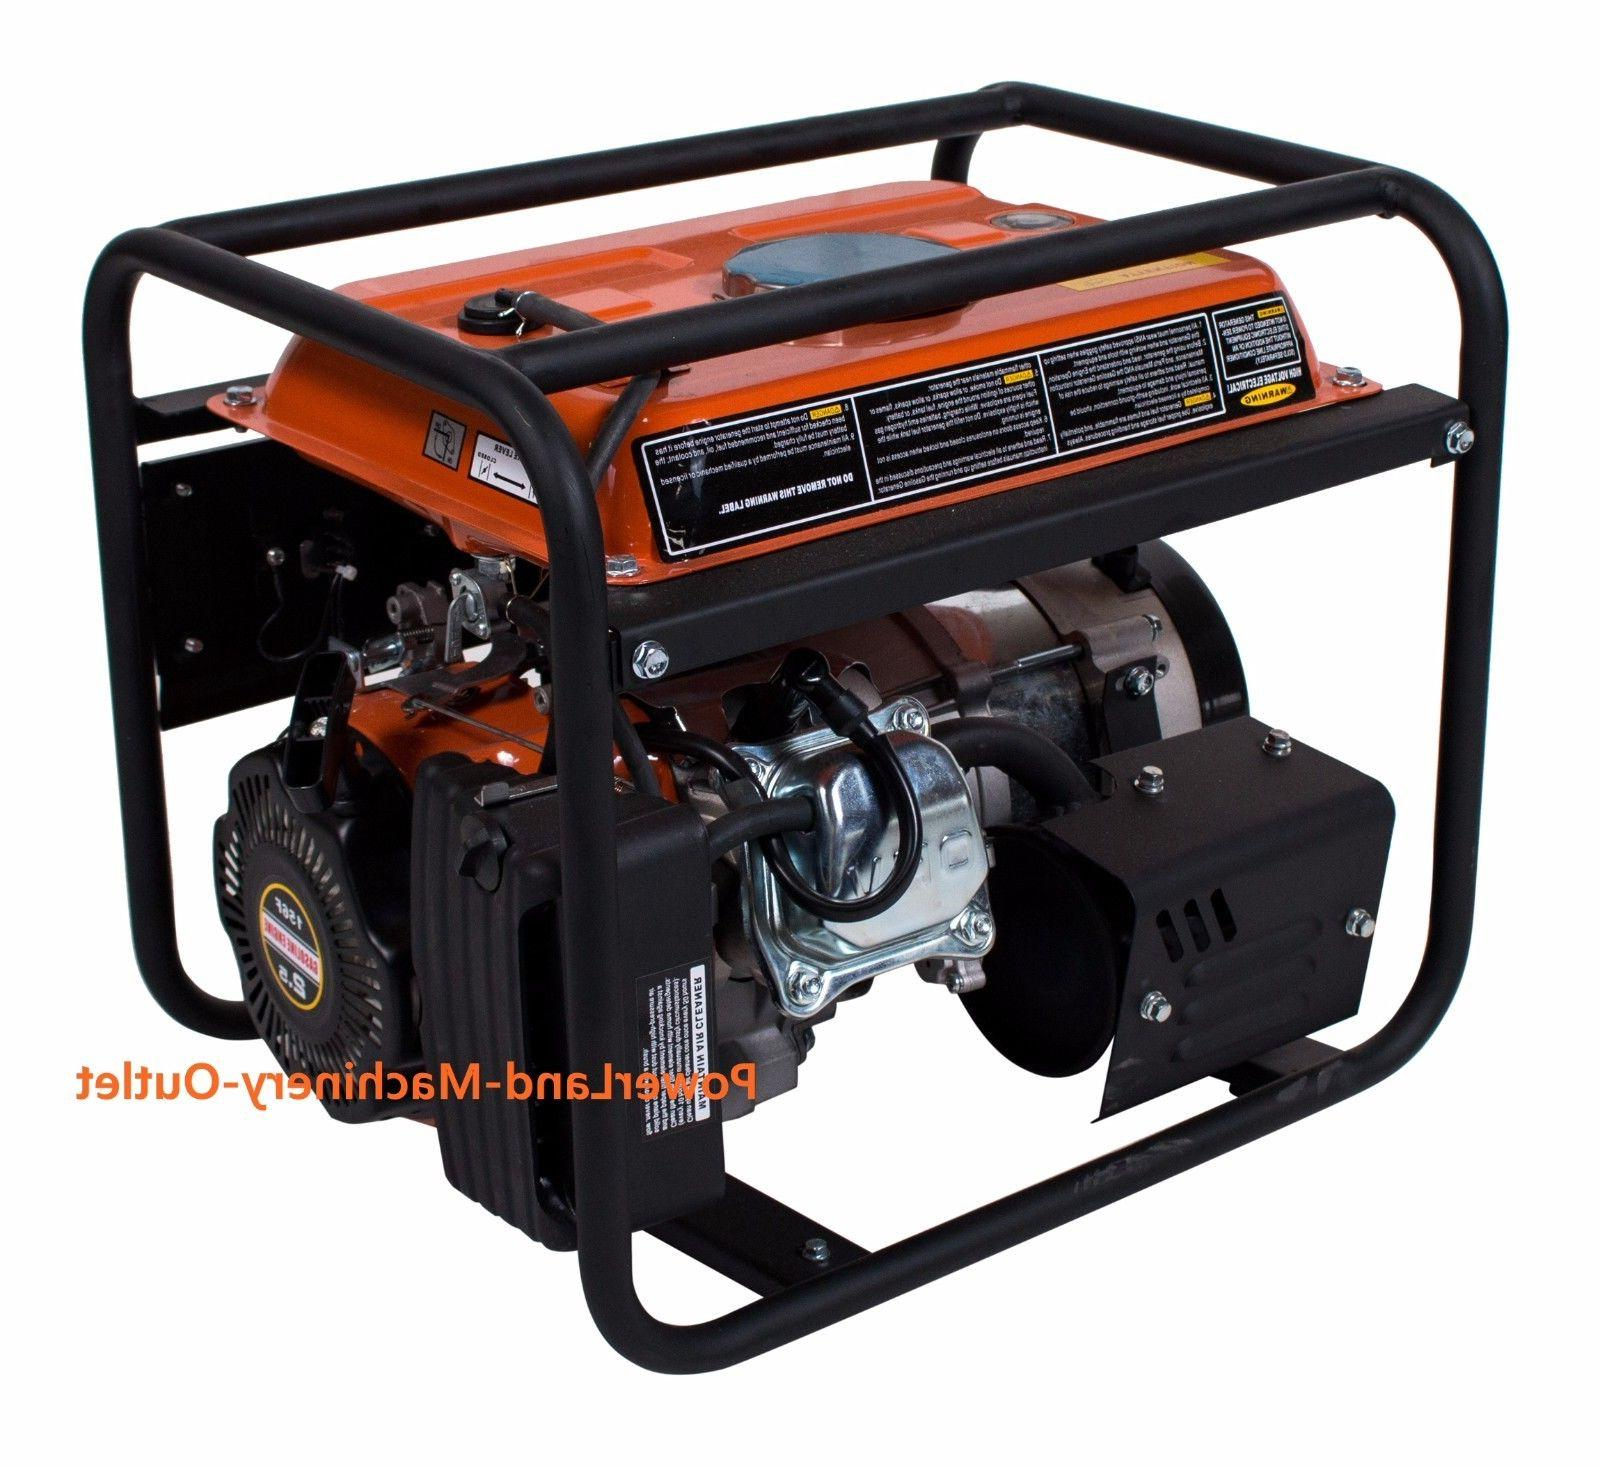 PowerLand Portable 1500 Watt 2.4HP Gas Generator/Recoil Start